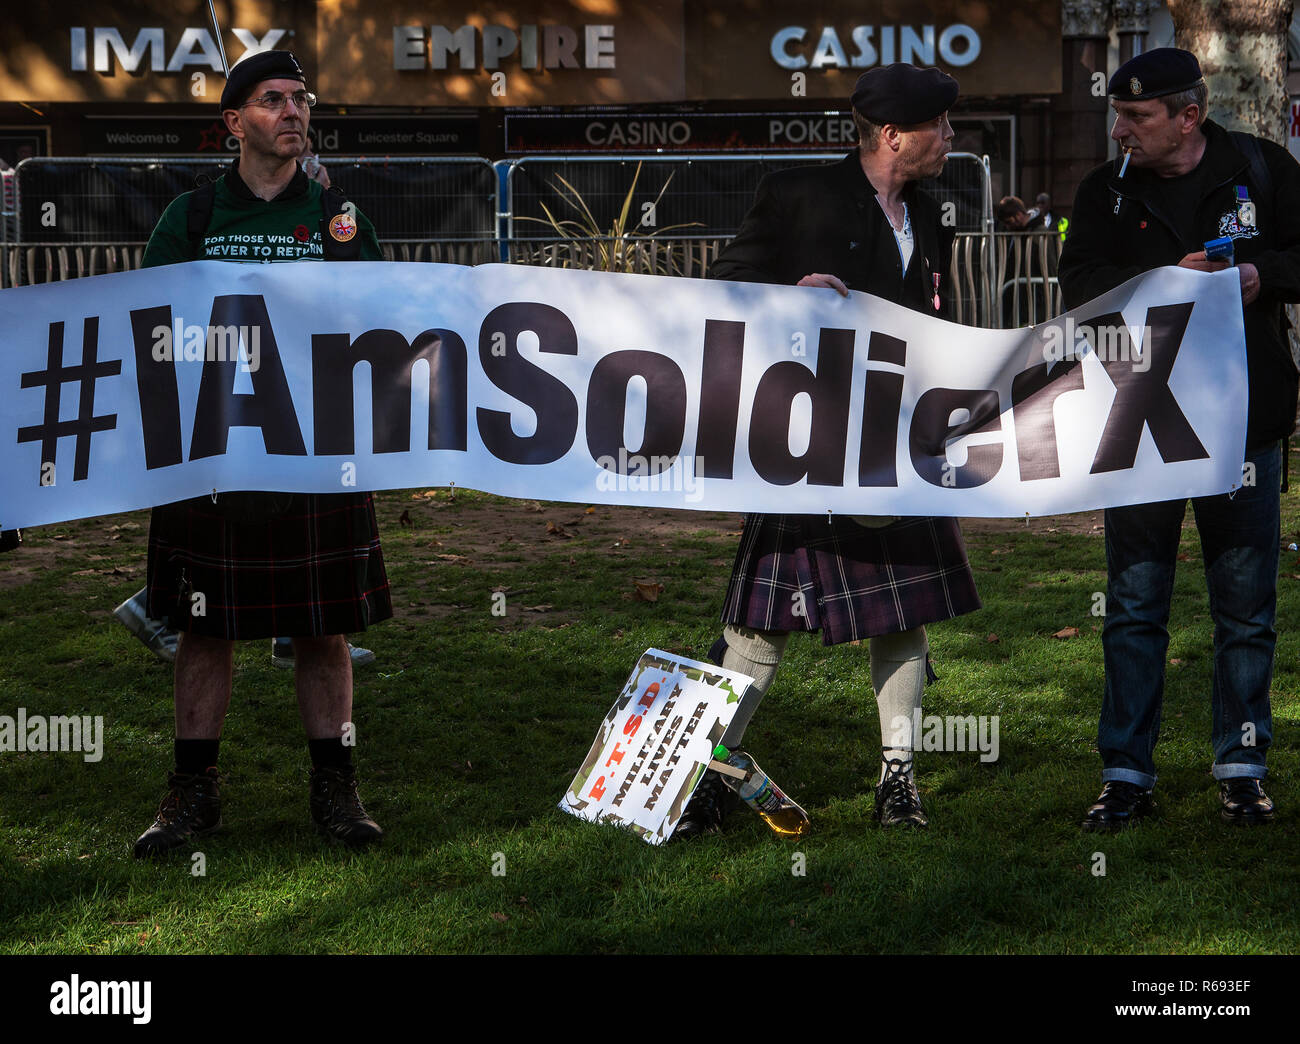 Veterans and families march to protest against P.T.S.D and to raise awareness of veterans suicides. - Stock Image